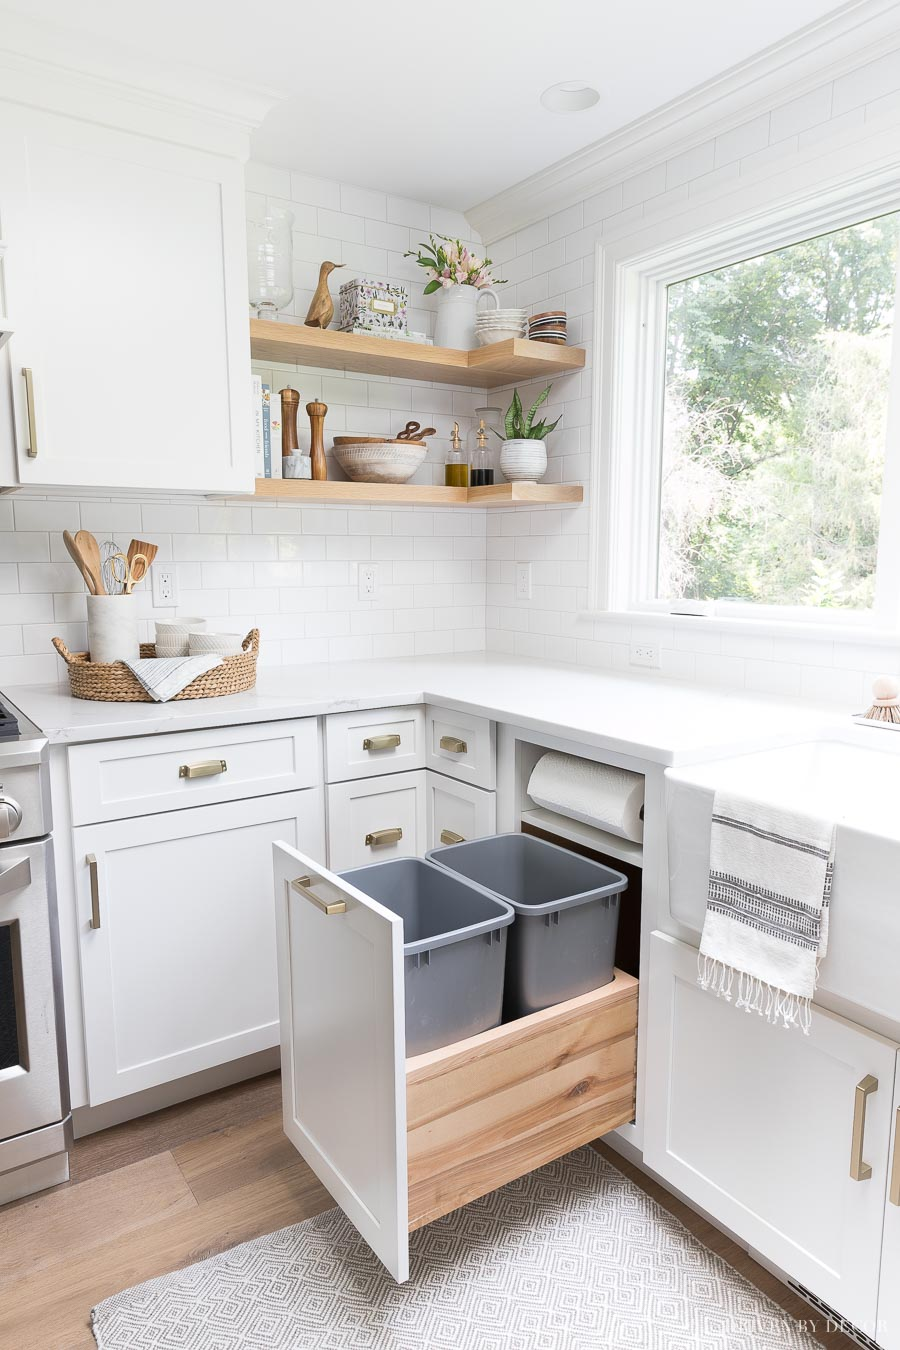 Cabinet Storage & Organization Ideas From Our New Kitchen! | Driven on trash cans for walls, trash cans for glass, trash cans for chairs, trash cans for custom cabinets, trash cans for home, trash cans for restaurants, trash cans for drawers, trash cans for storage,